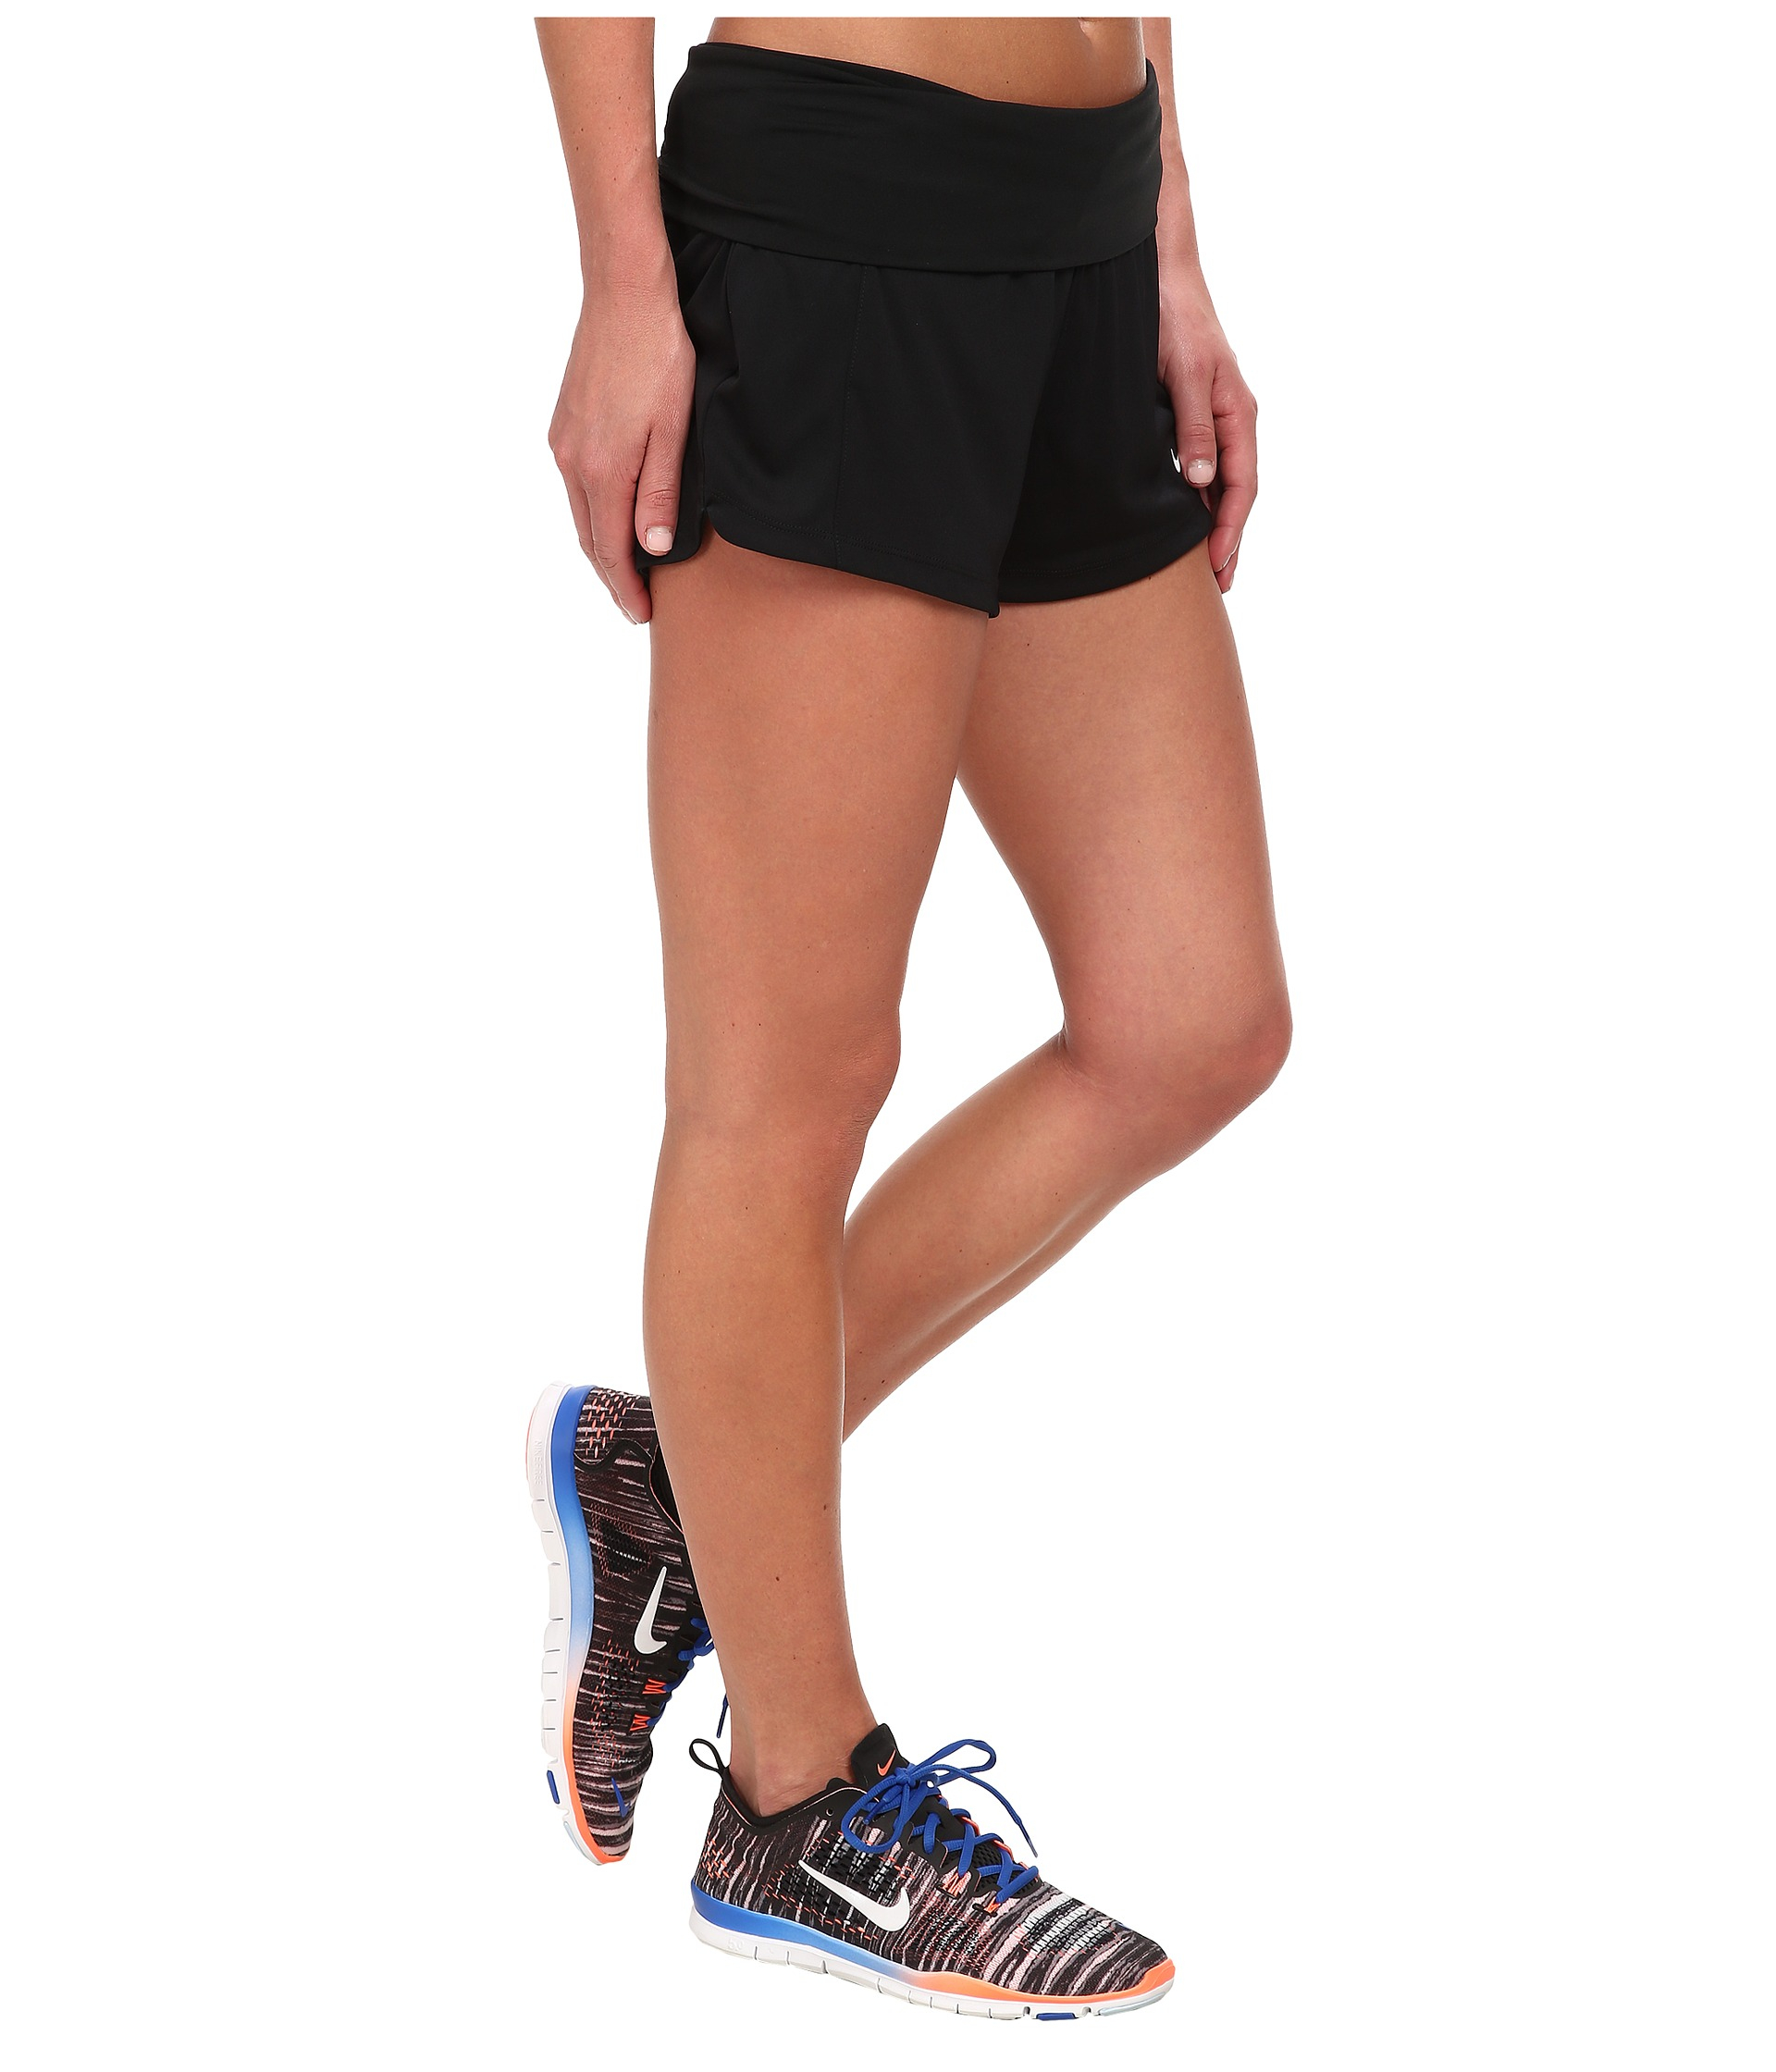 b83473daff Nike Dri-fit™ Knit Short W/ Fold-over Waistband in Black - Lyst